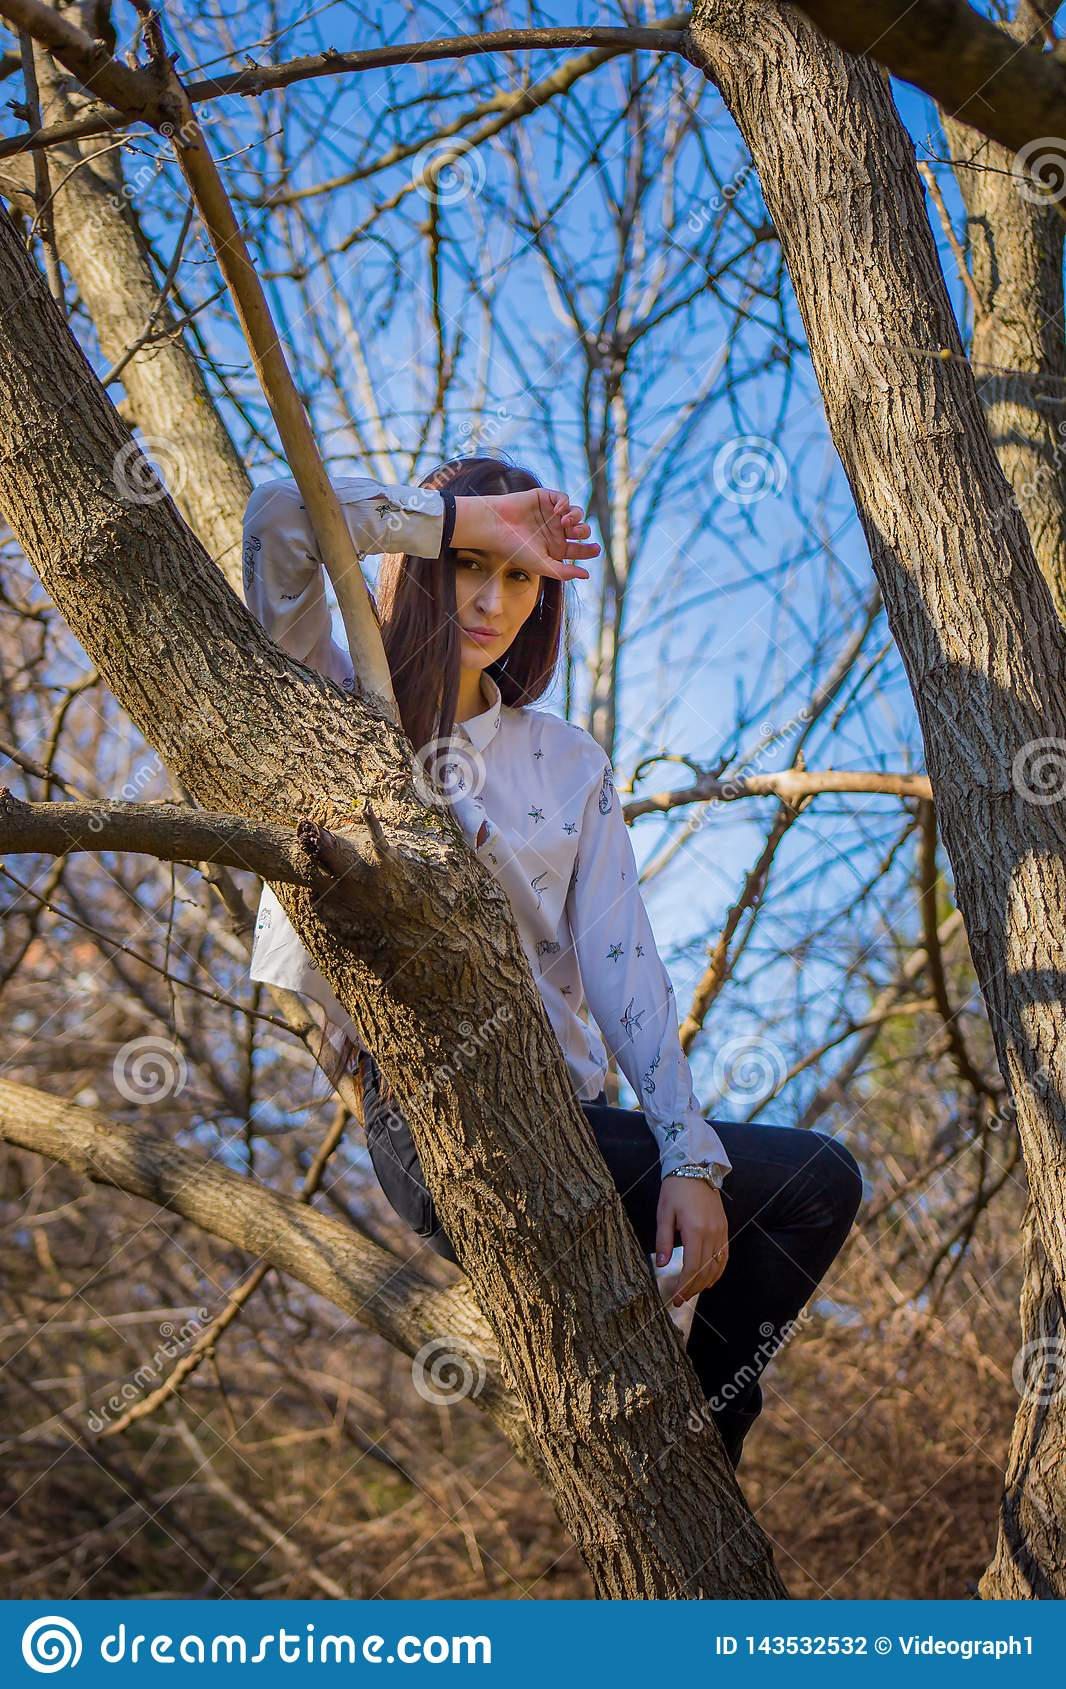 Bottom view charming cute slim girl is on top of unusual tree without leaves on background sky